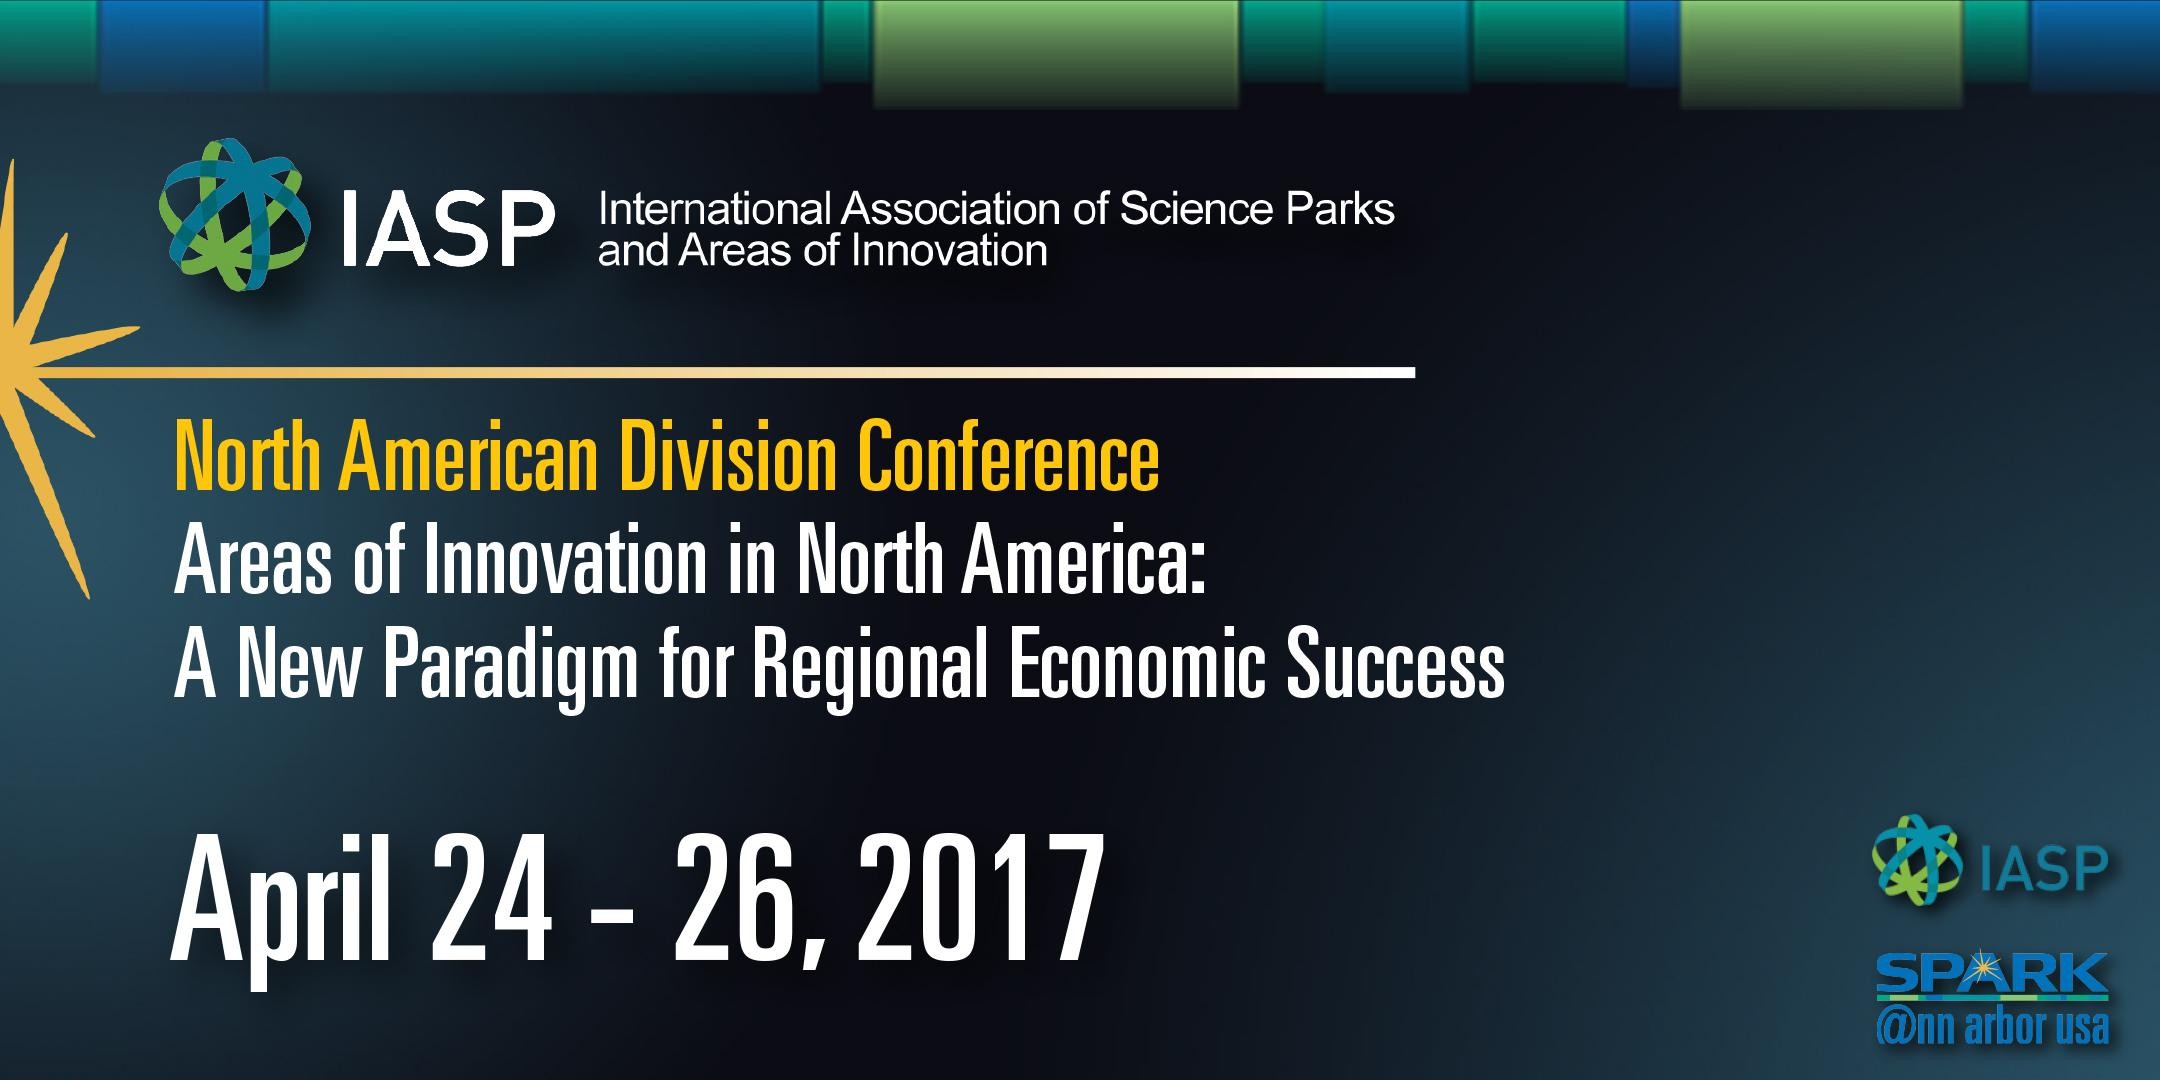 IASP North American Division Conference